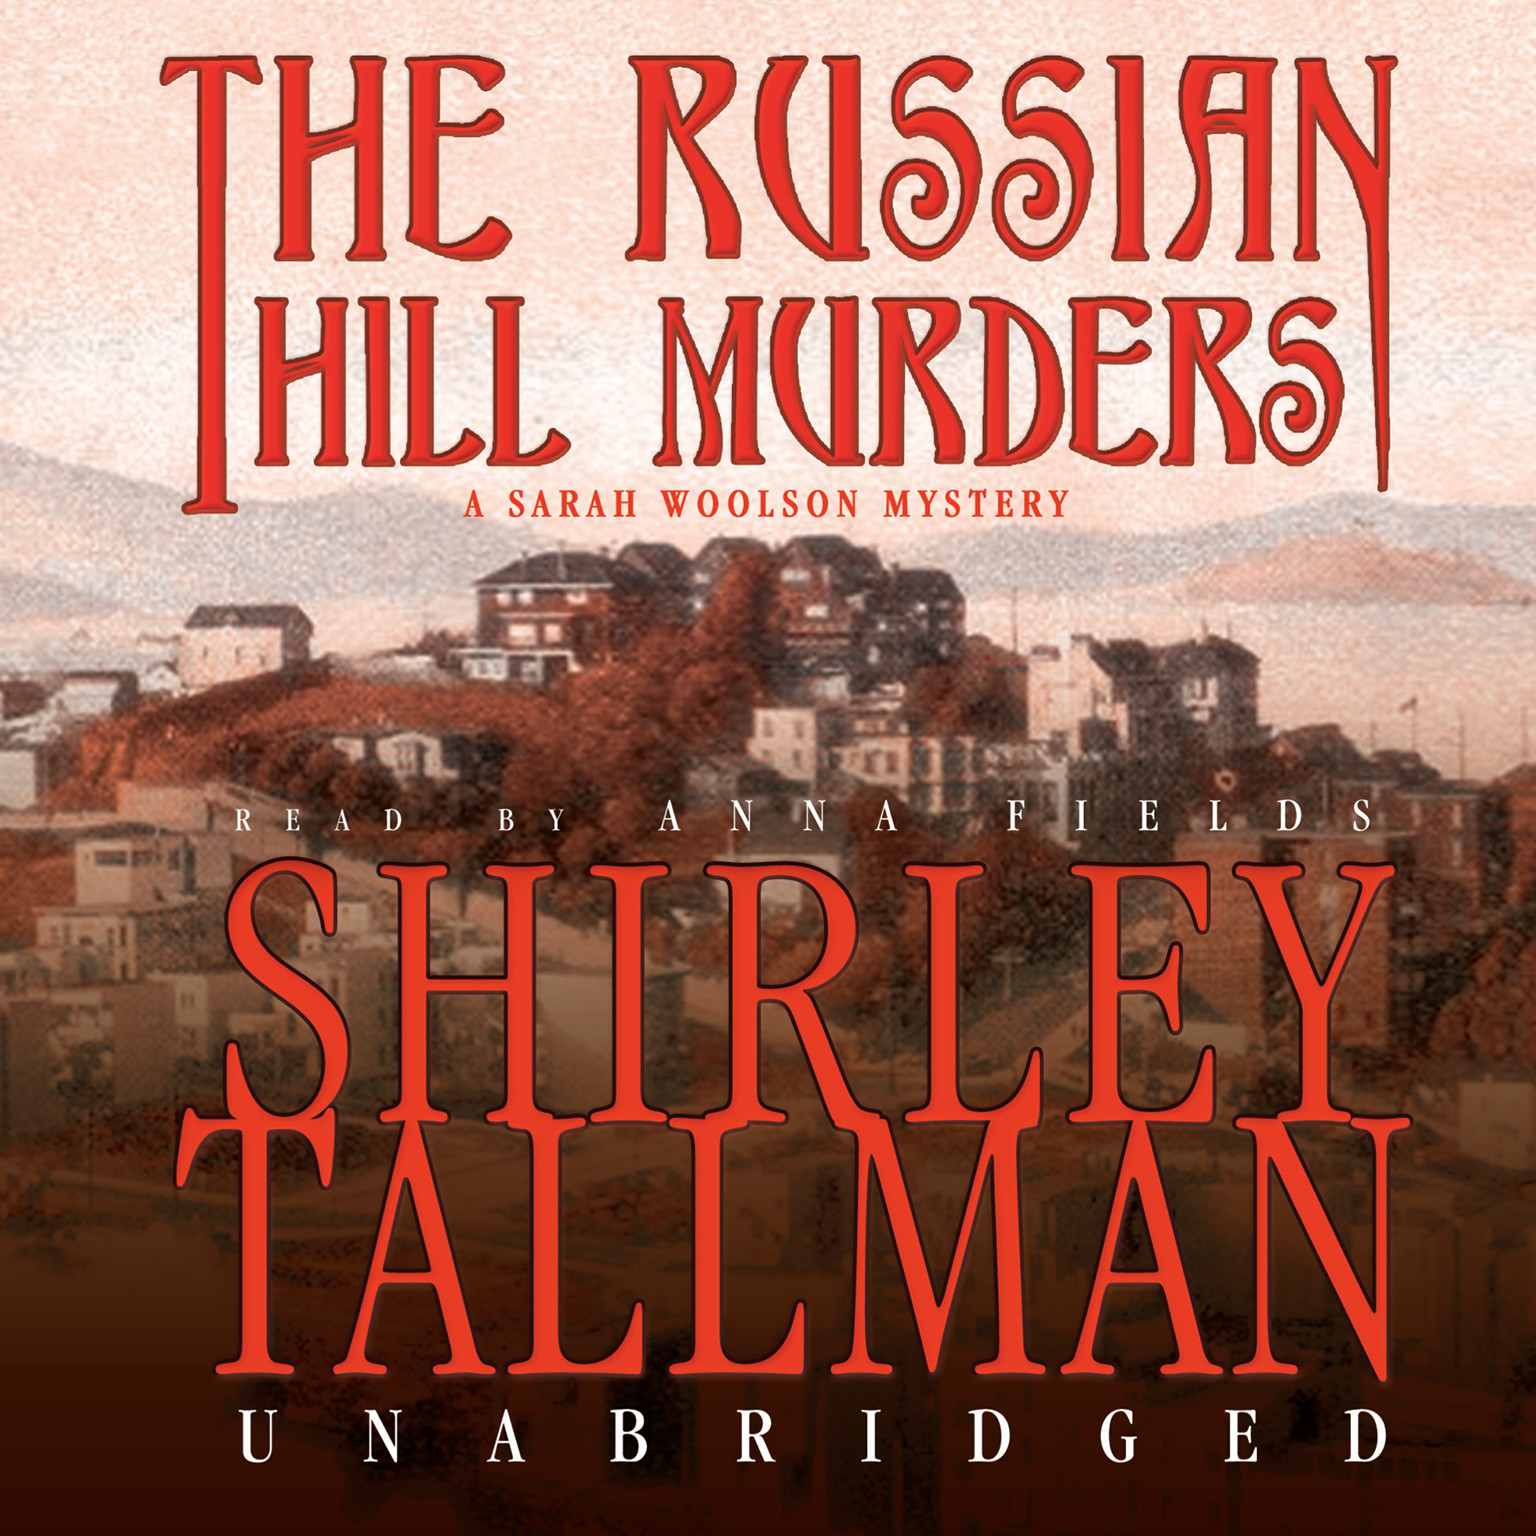 Printable The Russian Hill Murders: A Sarah Woolson Mystery Audiobook Cover Art